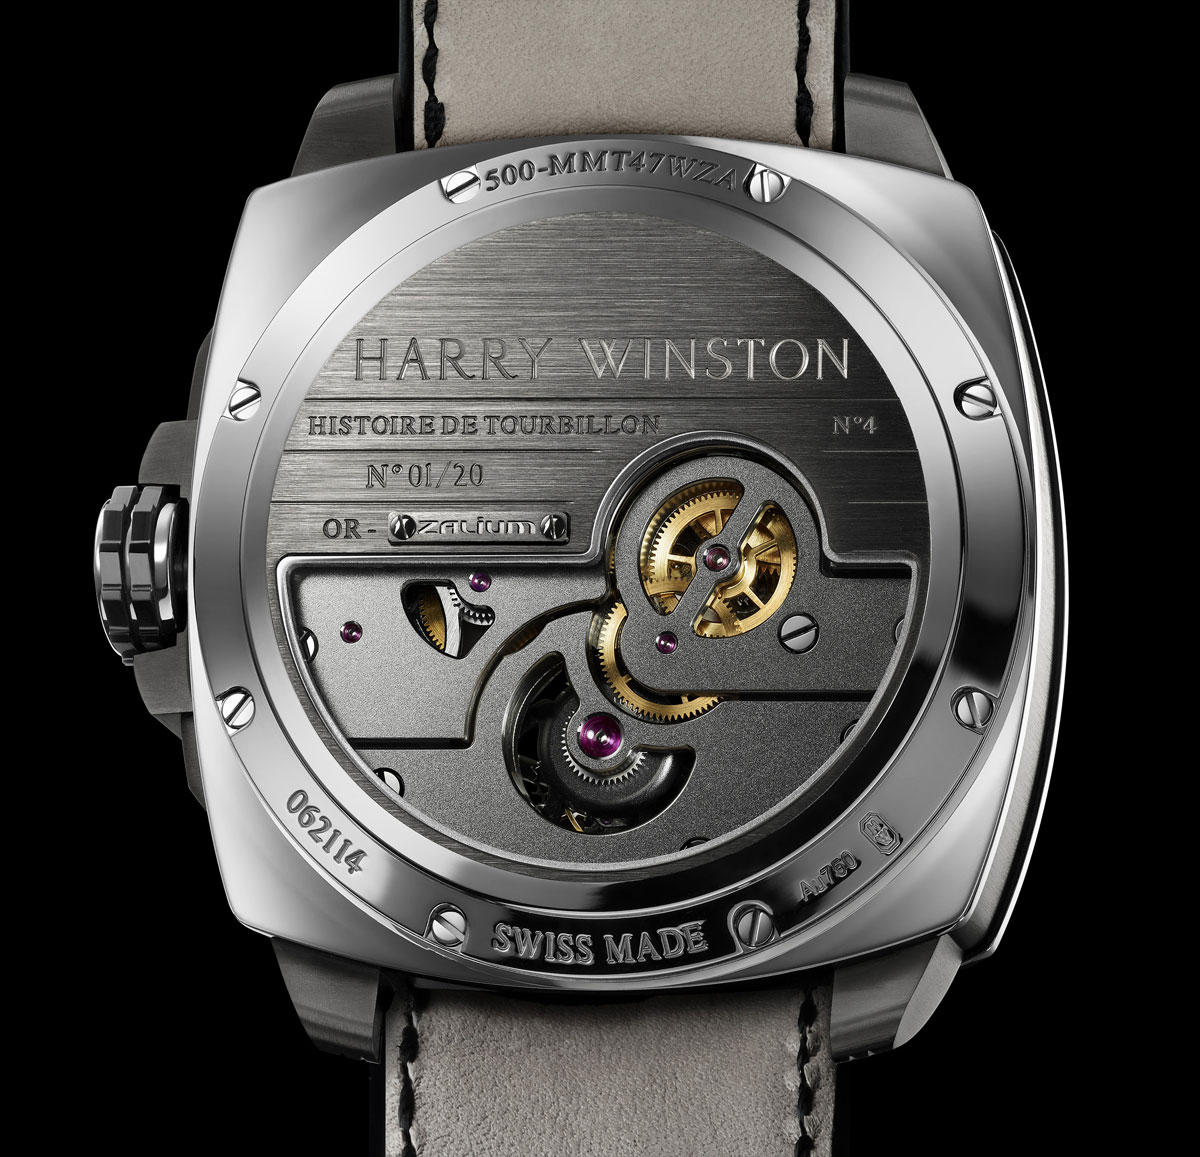 New Harry Winston Histoire de Tourbillon 4 Watch – Limited to 20 Pieces